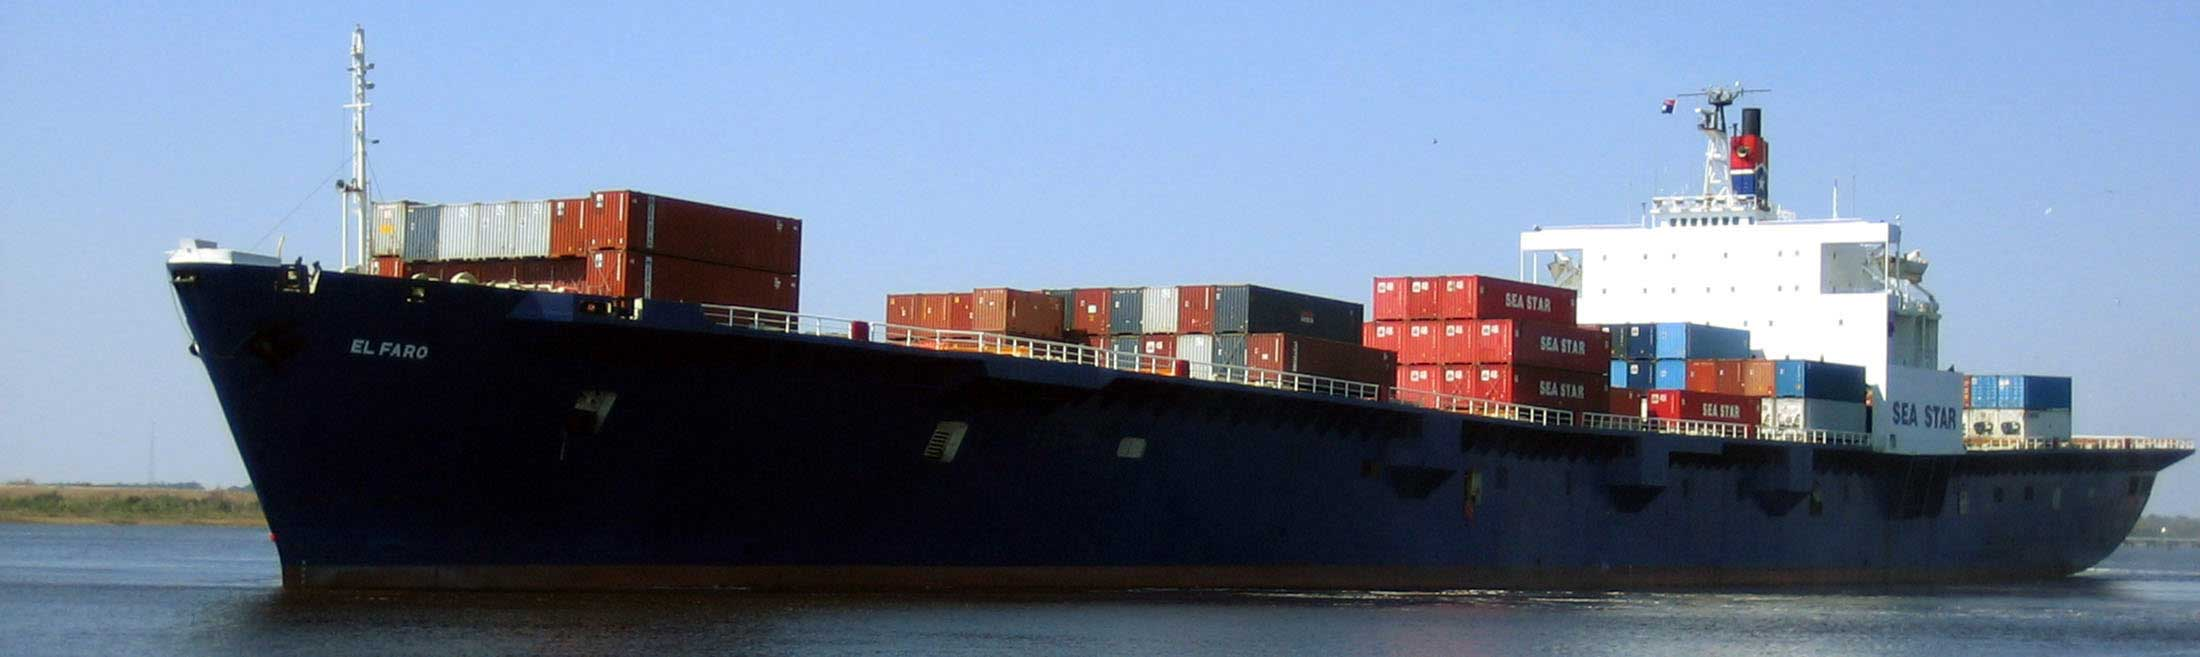 The cargo ship, El Faro.